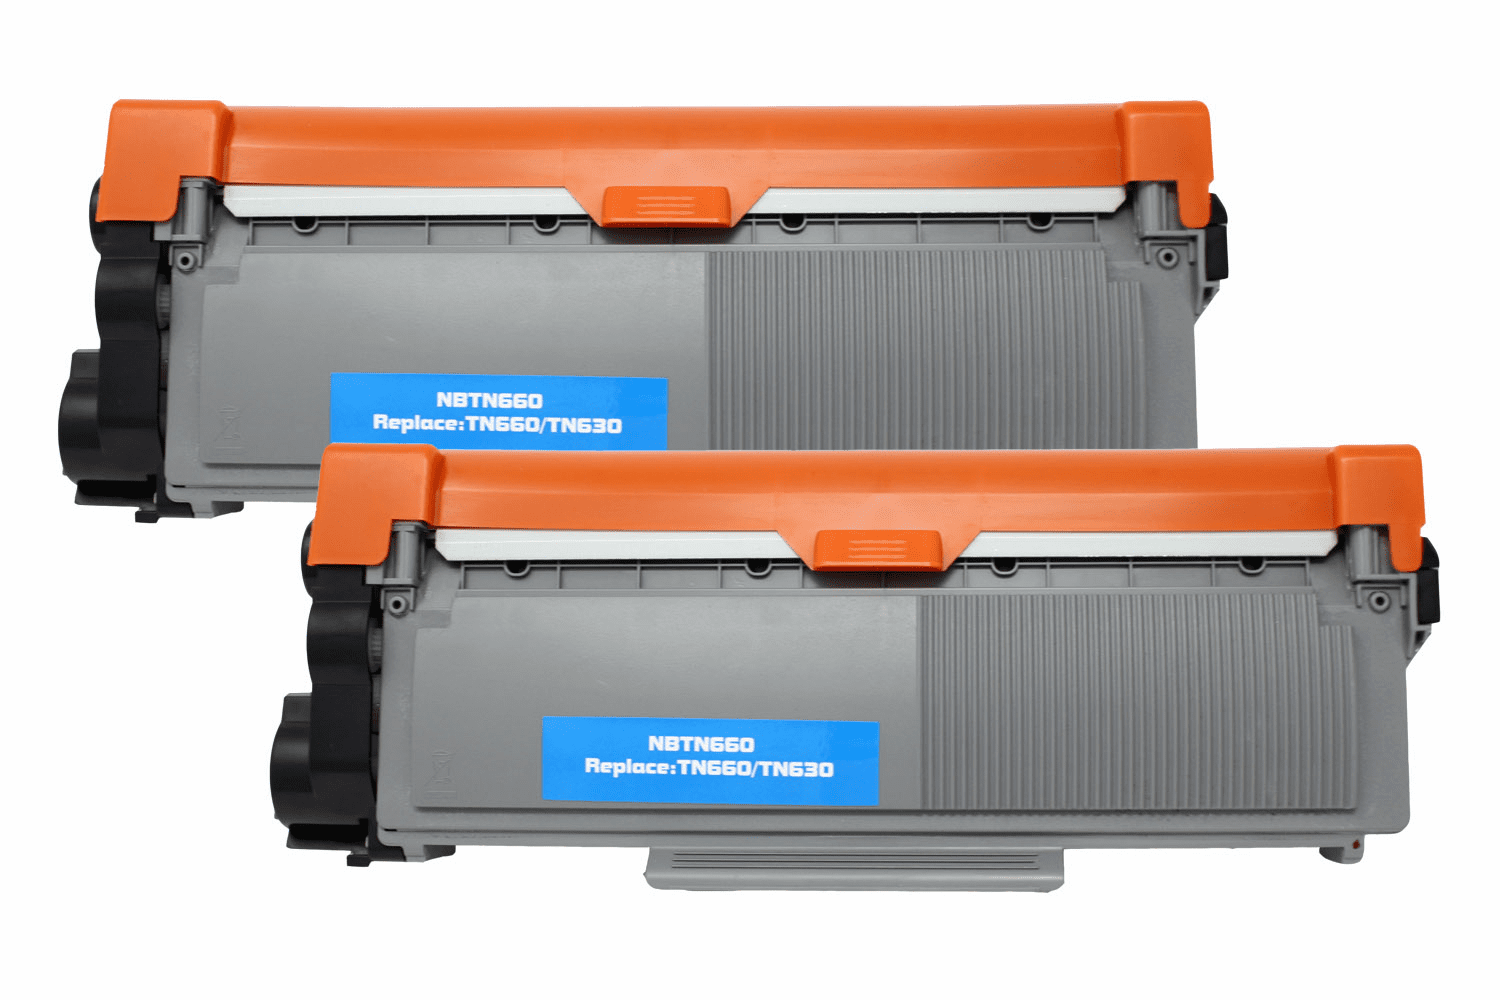 Premium Toner Cartridge Compatible with Brother TN-630/TN-660 (Black, 2 pack)